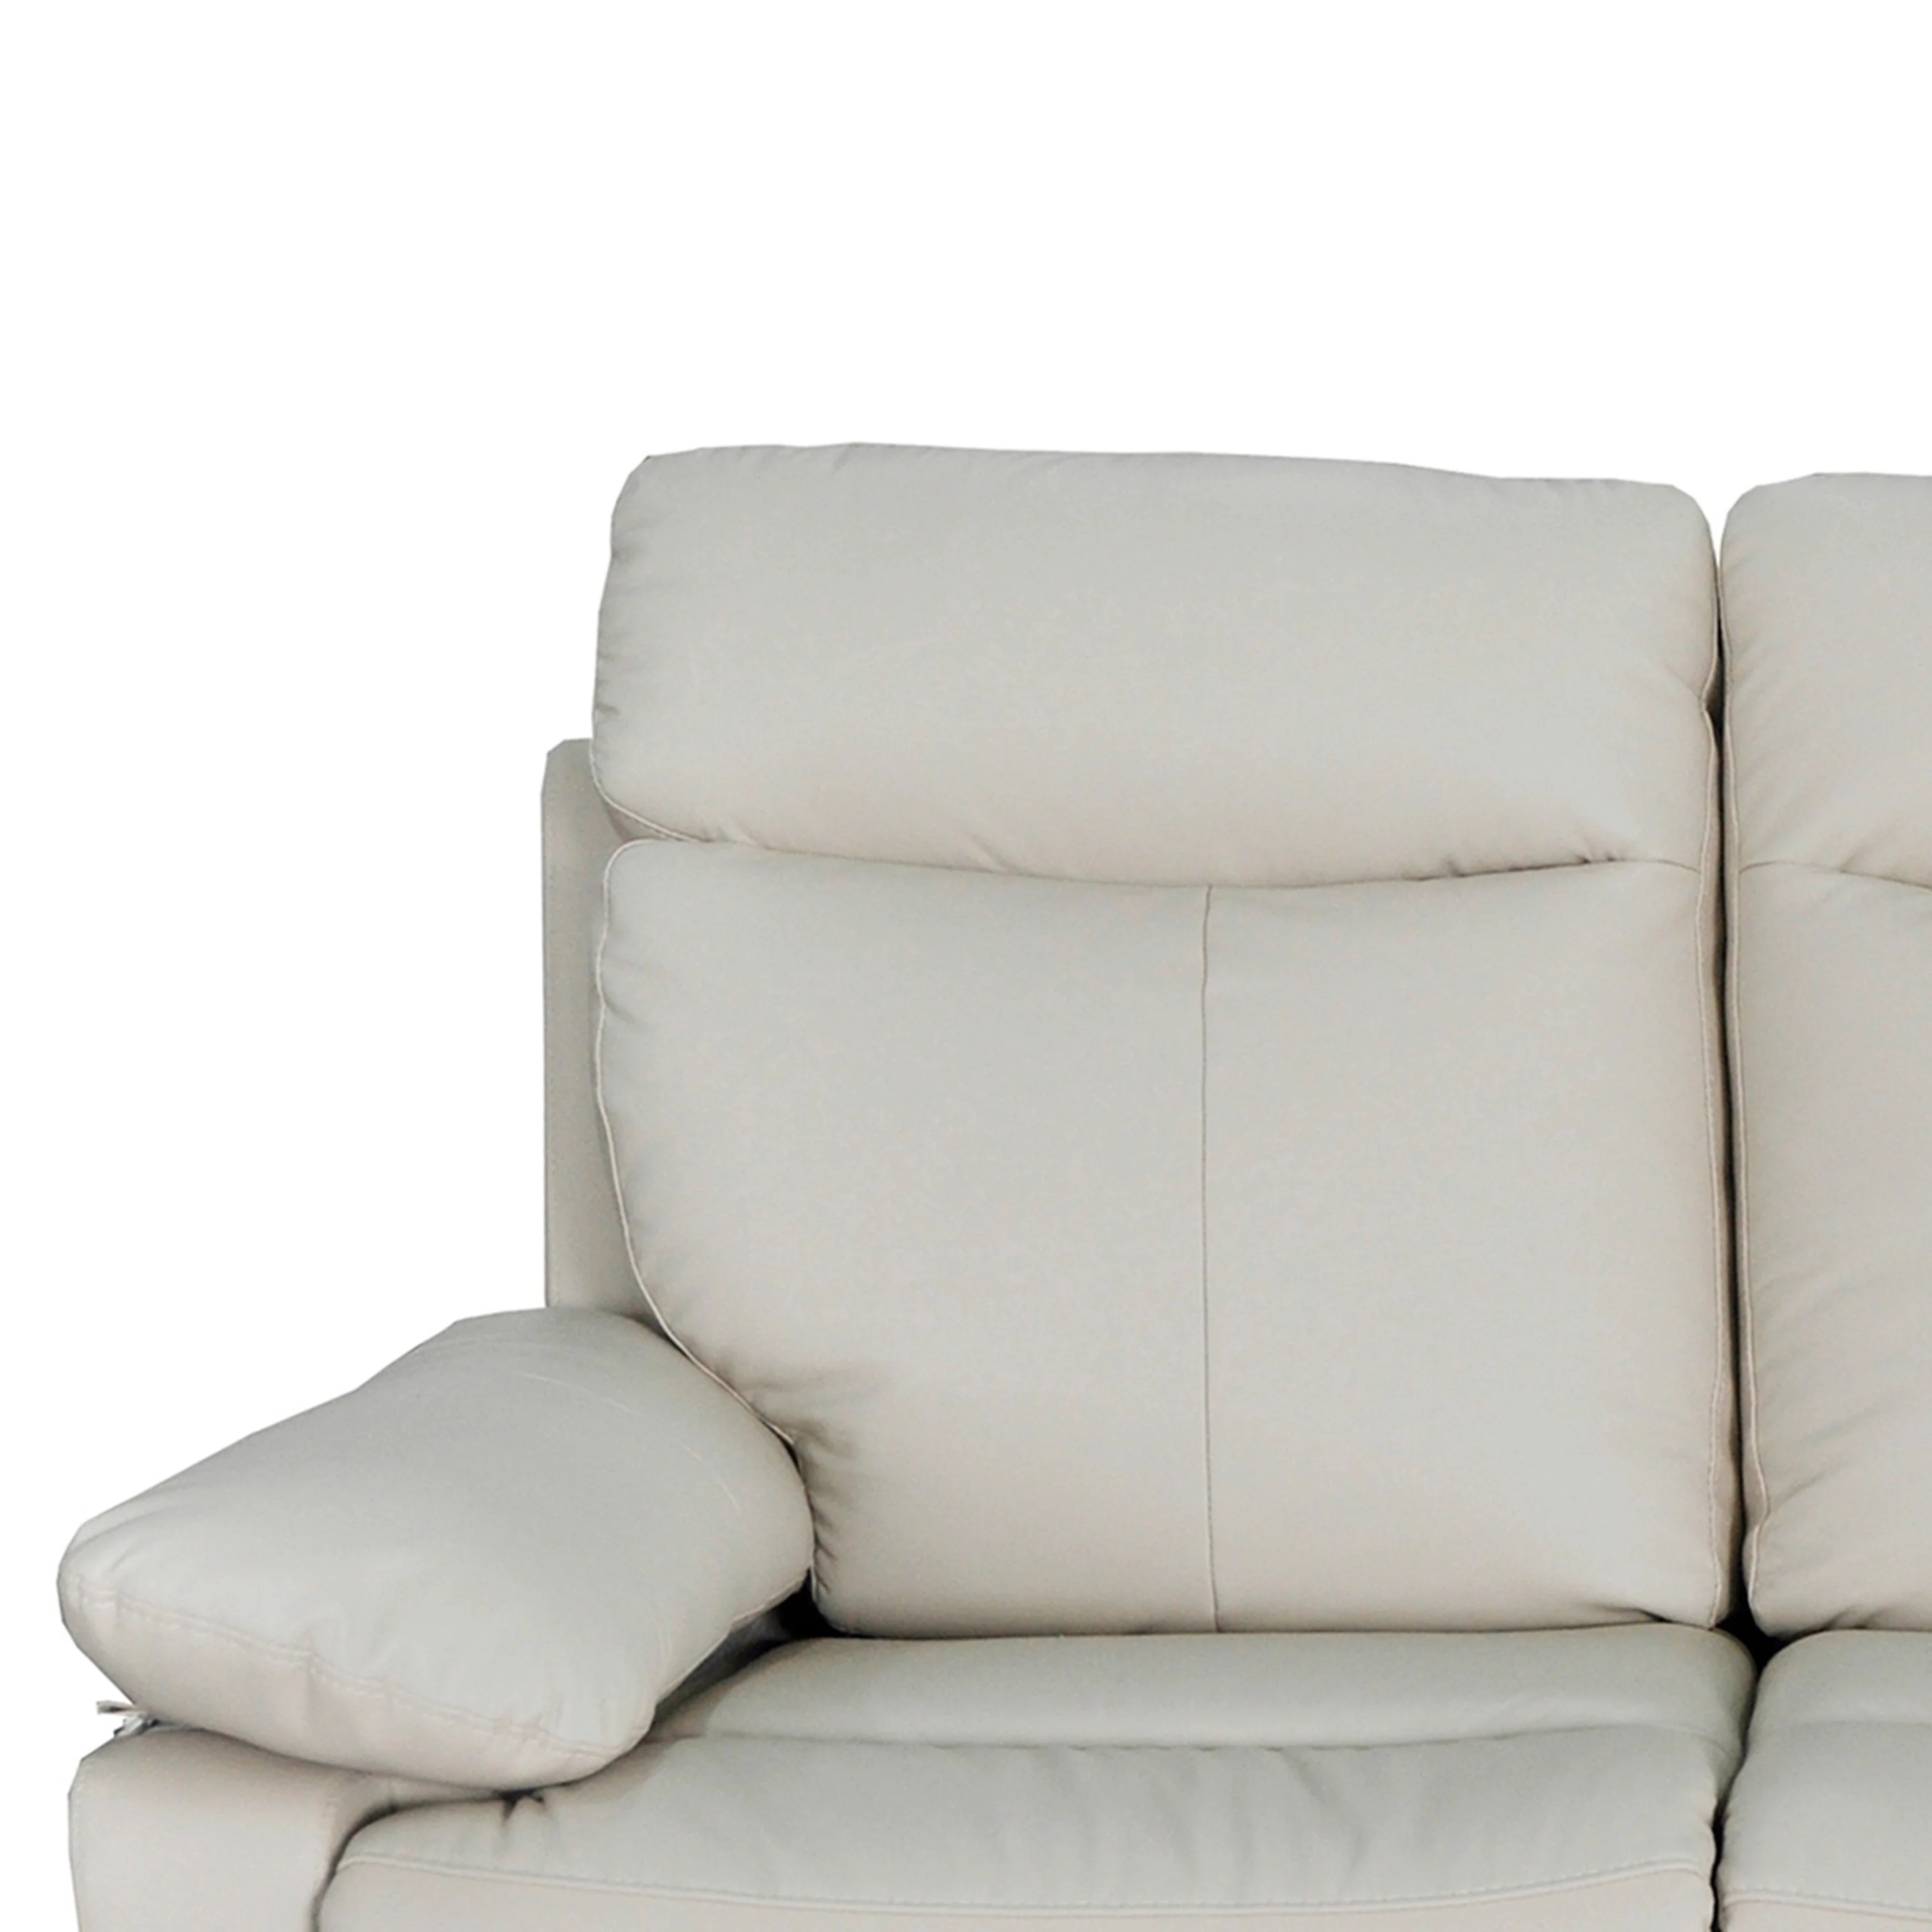 ryker reclining sofa and loveseat 2 piece set english roll arm bed leather ebay